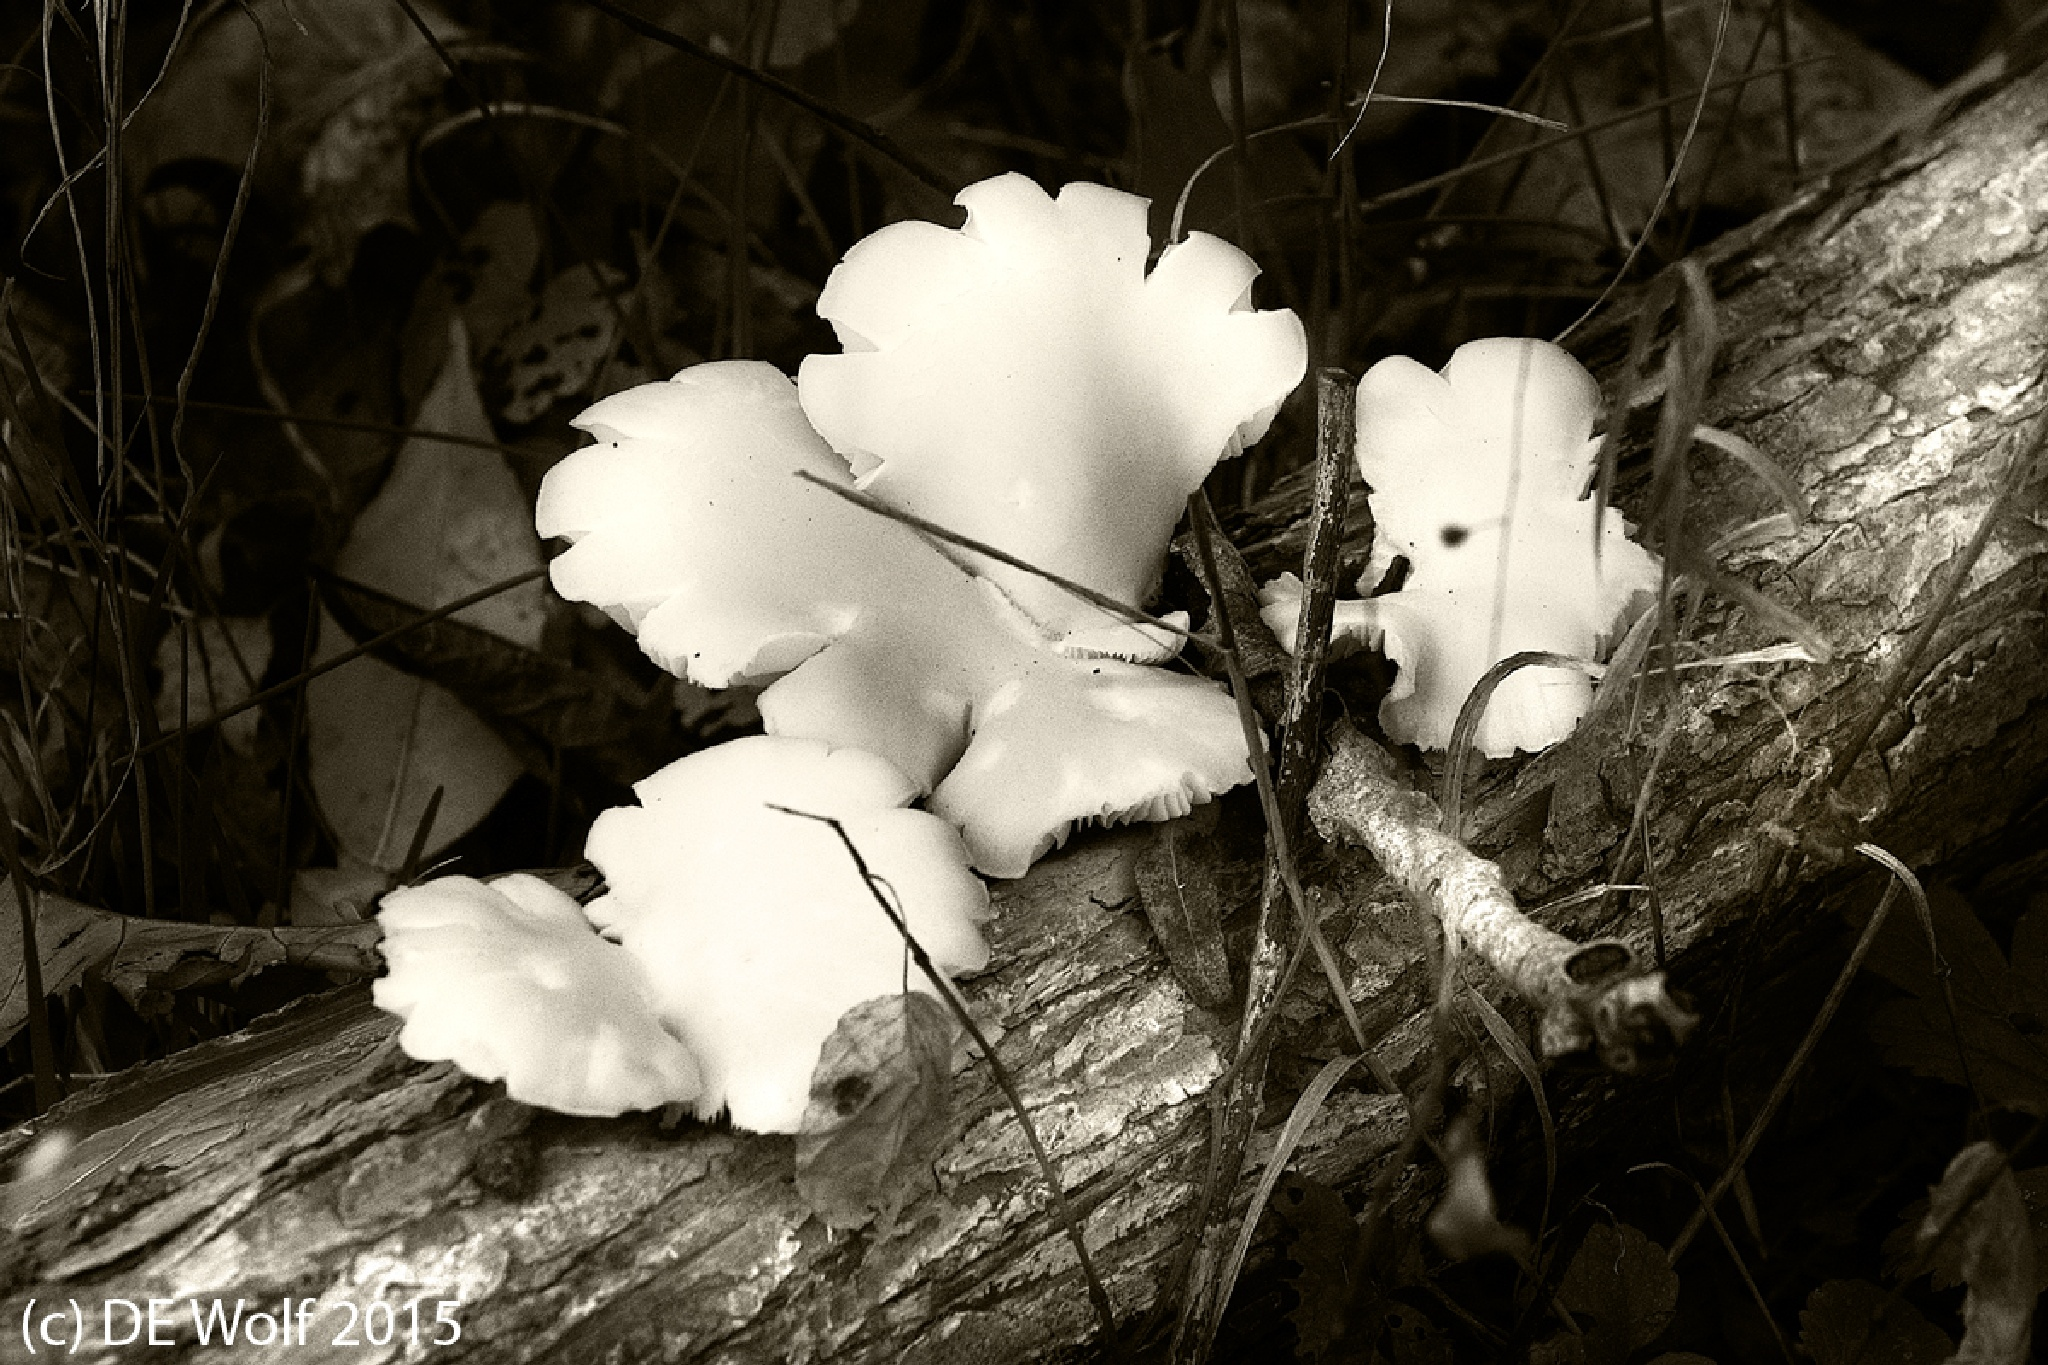 Oyster mushrooms by David E. Wolf